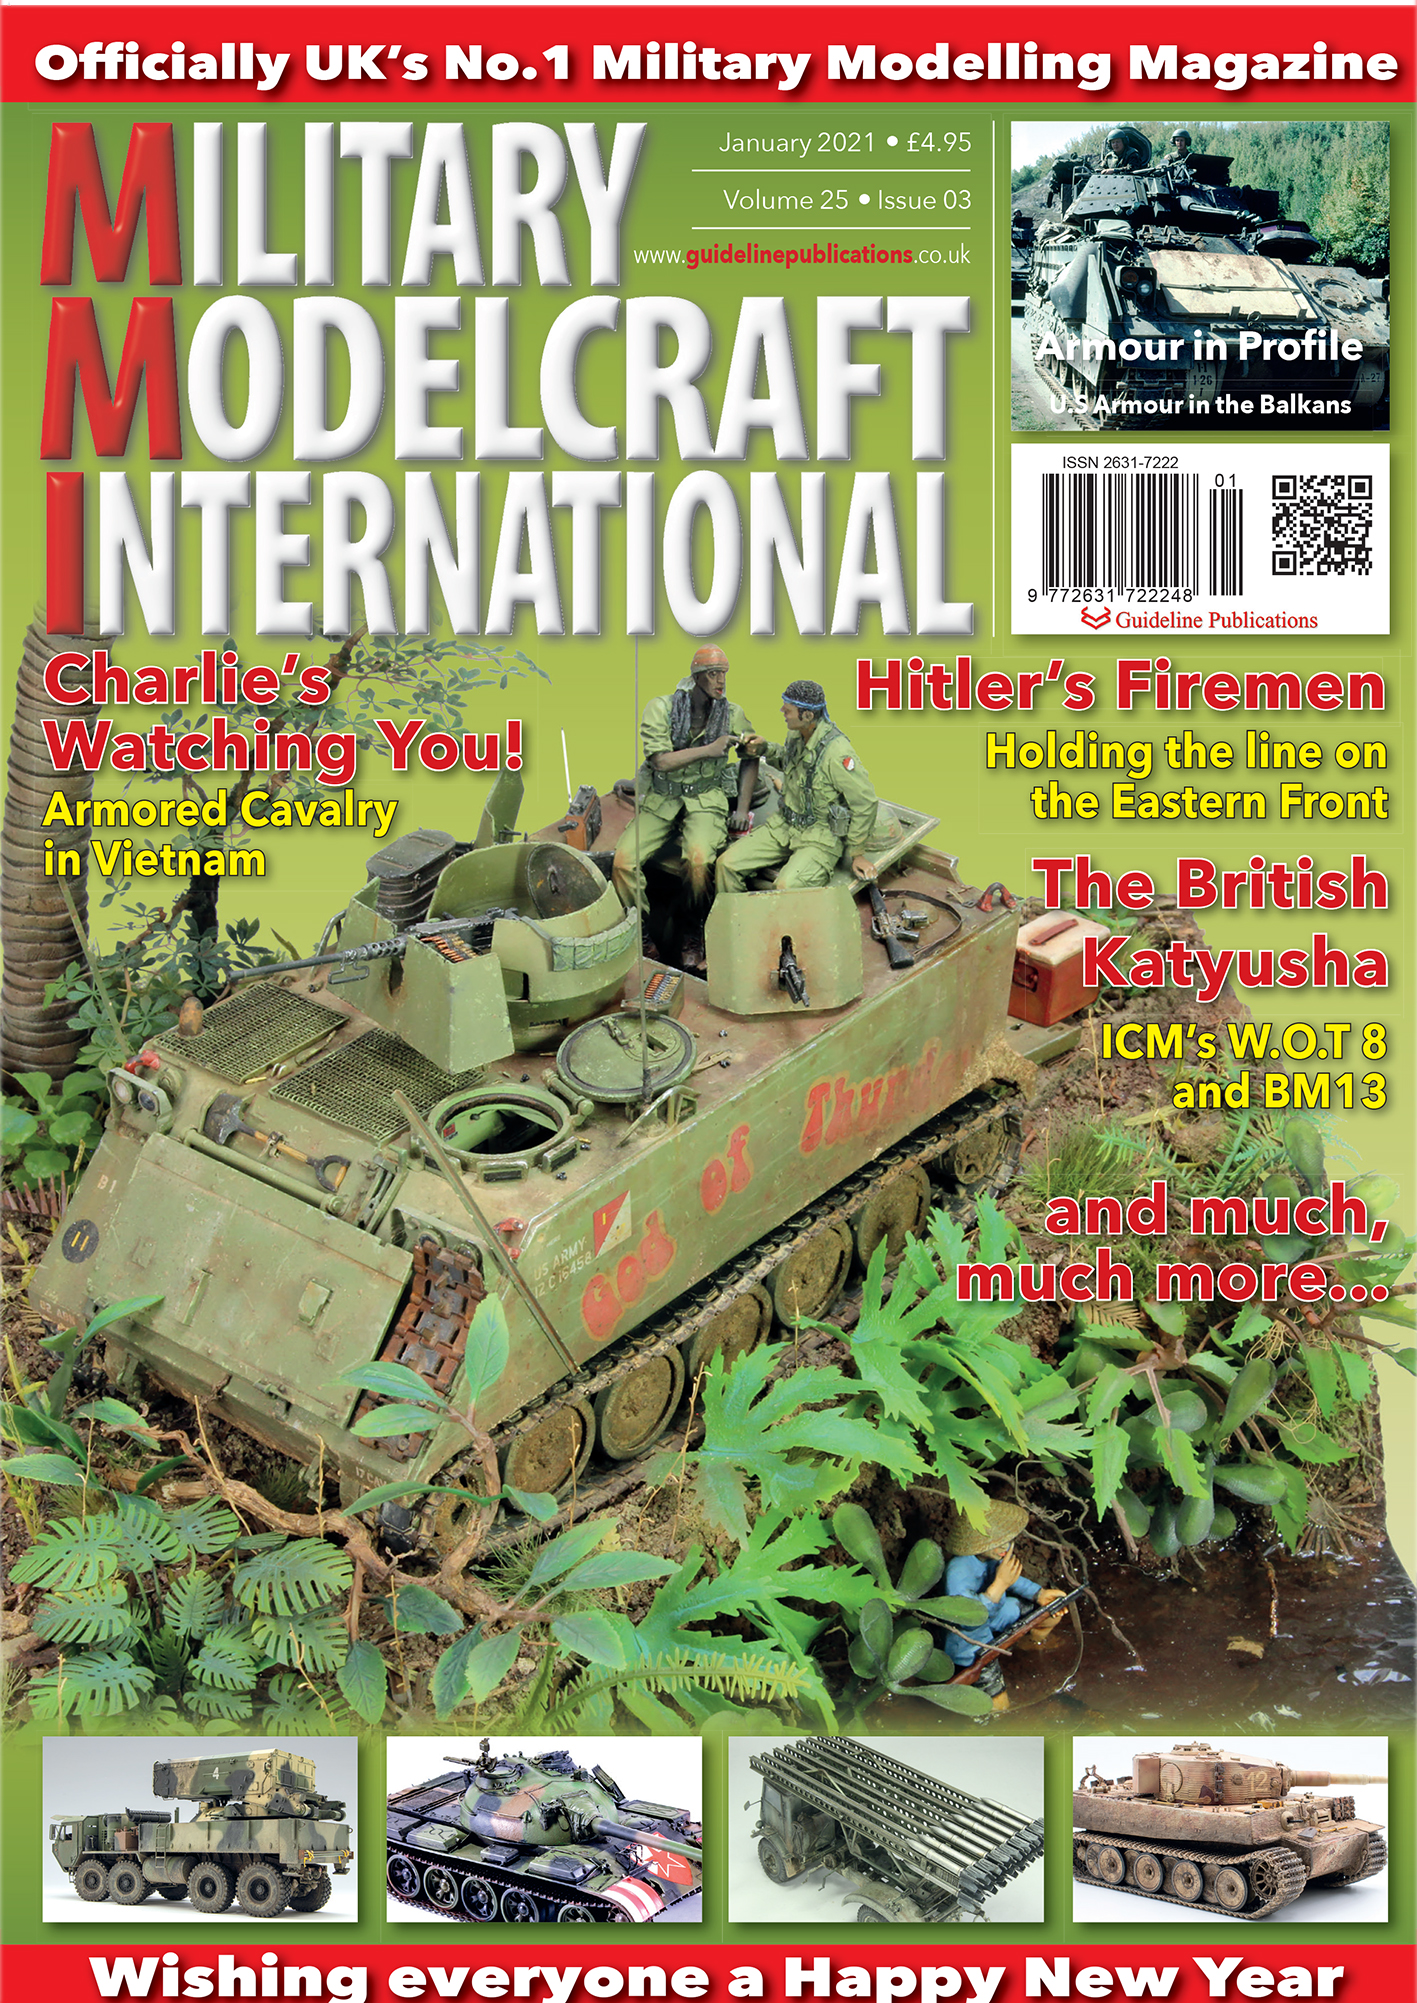 Guideline Publications Military Modelcraft Int Jan 21 vol 25-03 Jan 21